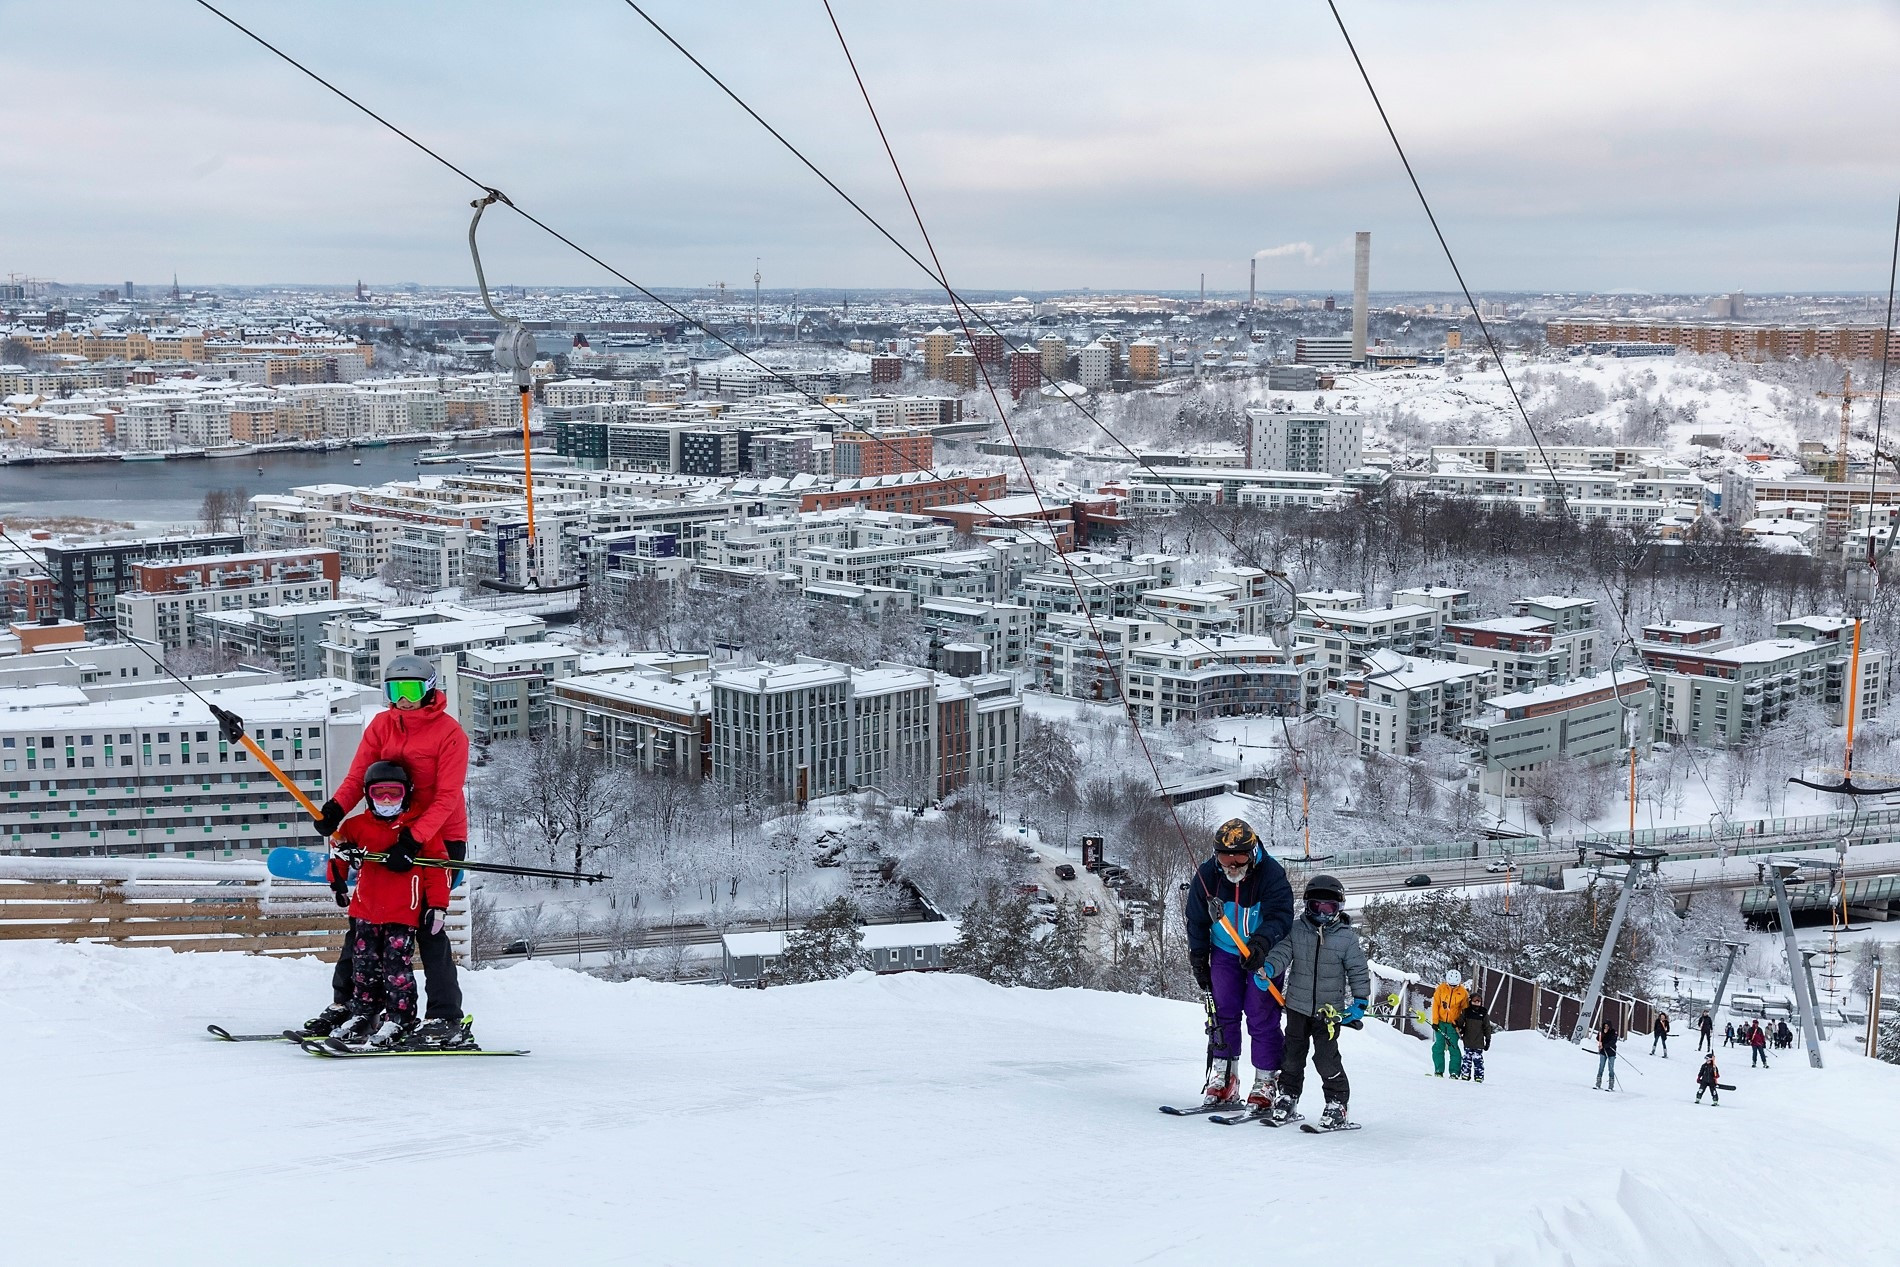 The ski lifts in Stockholm run from early morning until late evening ©Stockholm Åre 2026